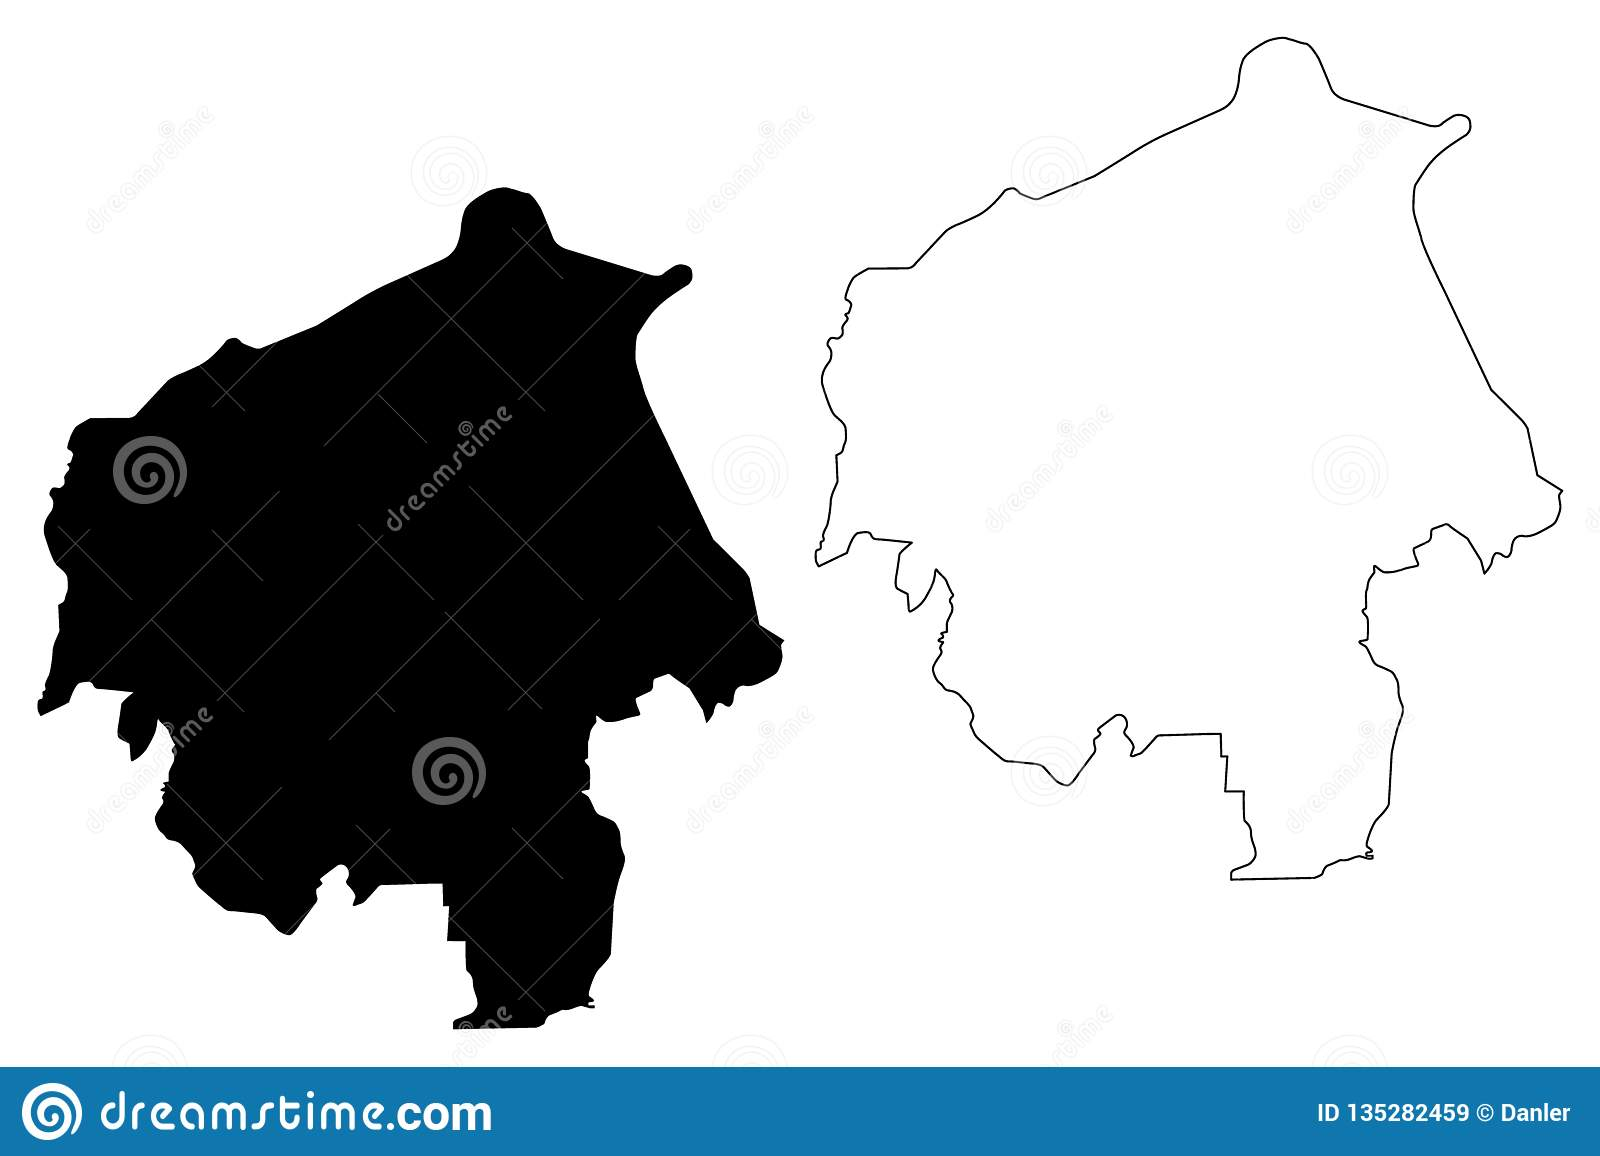 Oyo State map vector stock vector. Illustration of county ... on map of maiduguri, map of kingdom of prussia, map of nigerian civil war, map of borno state, map of benin city, map of ibadan, map of zulu kingdom, map of dutch east indies, map of new france, map of kingdom of castile, map of yoruba, map of kingdom of kush, map of ghana, map of democratic republic of the congo, map of fatimid caliphate, map of gombe state, map of kano, map of kingdom of nri, map of katsina,